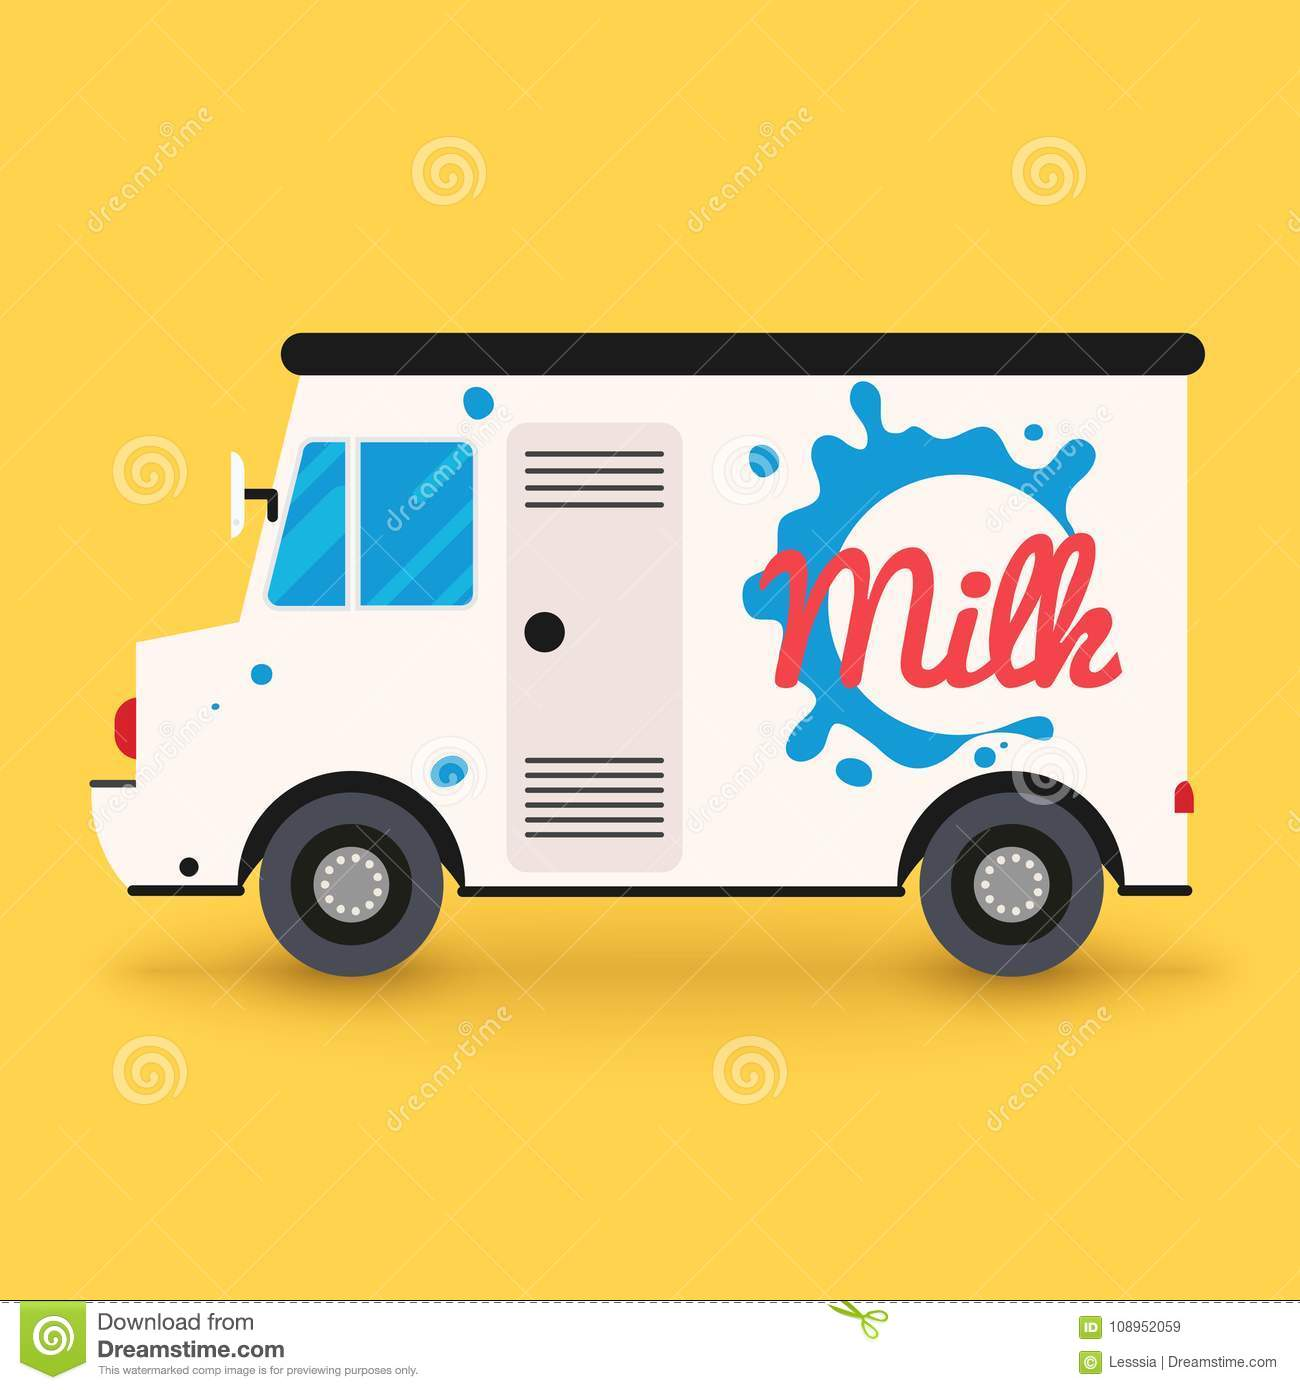 Dairy milk delivery service. Local delivery van.Flat design mode